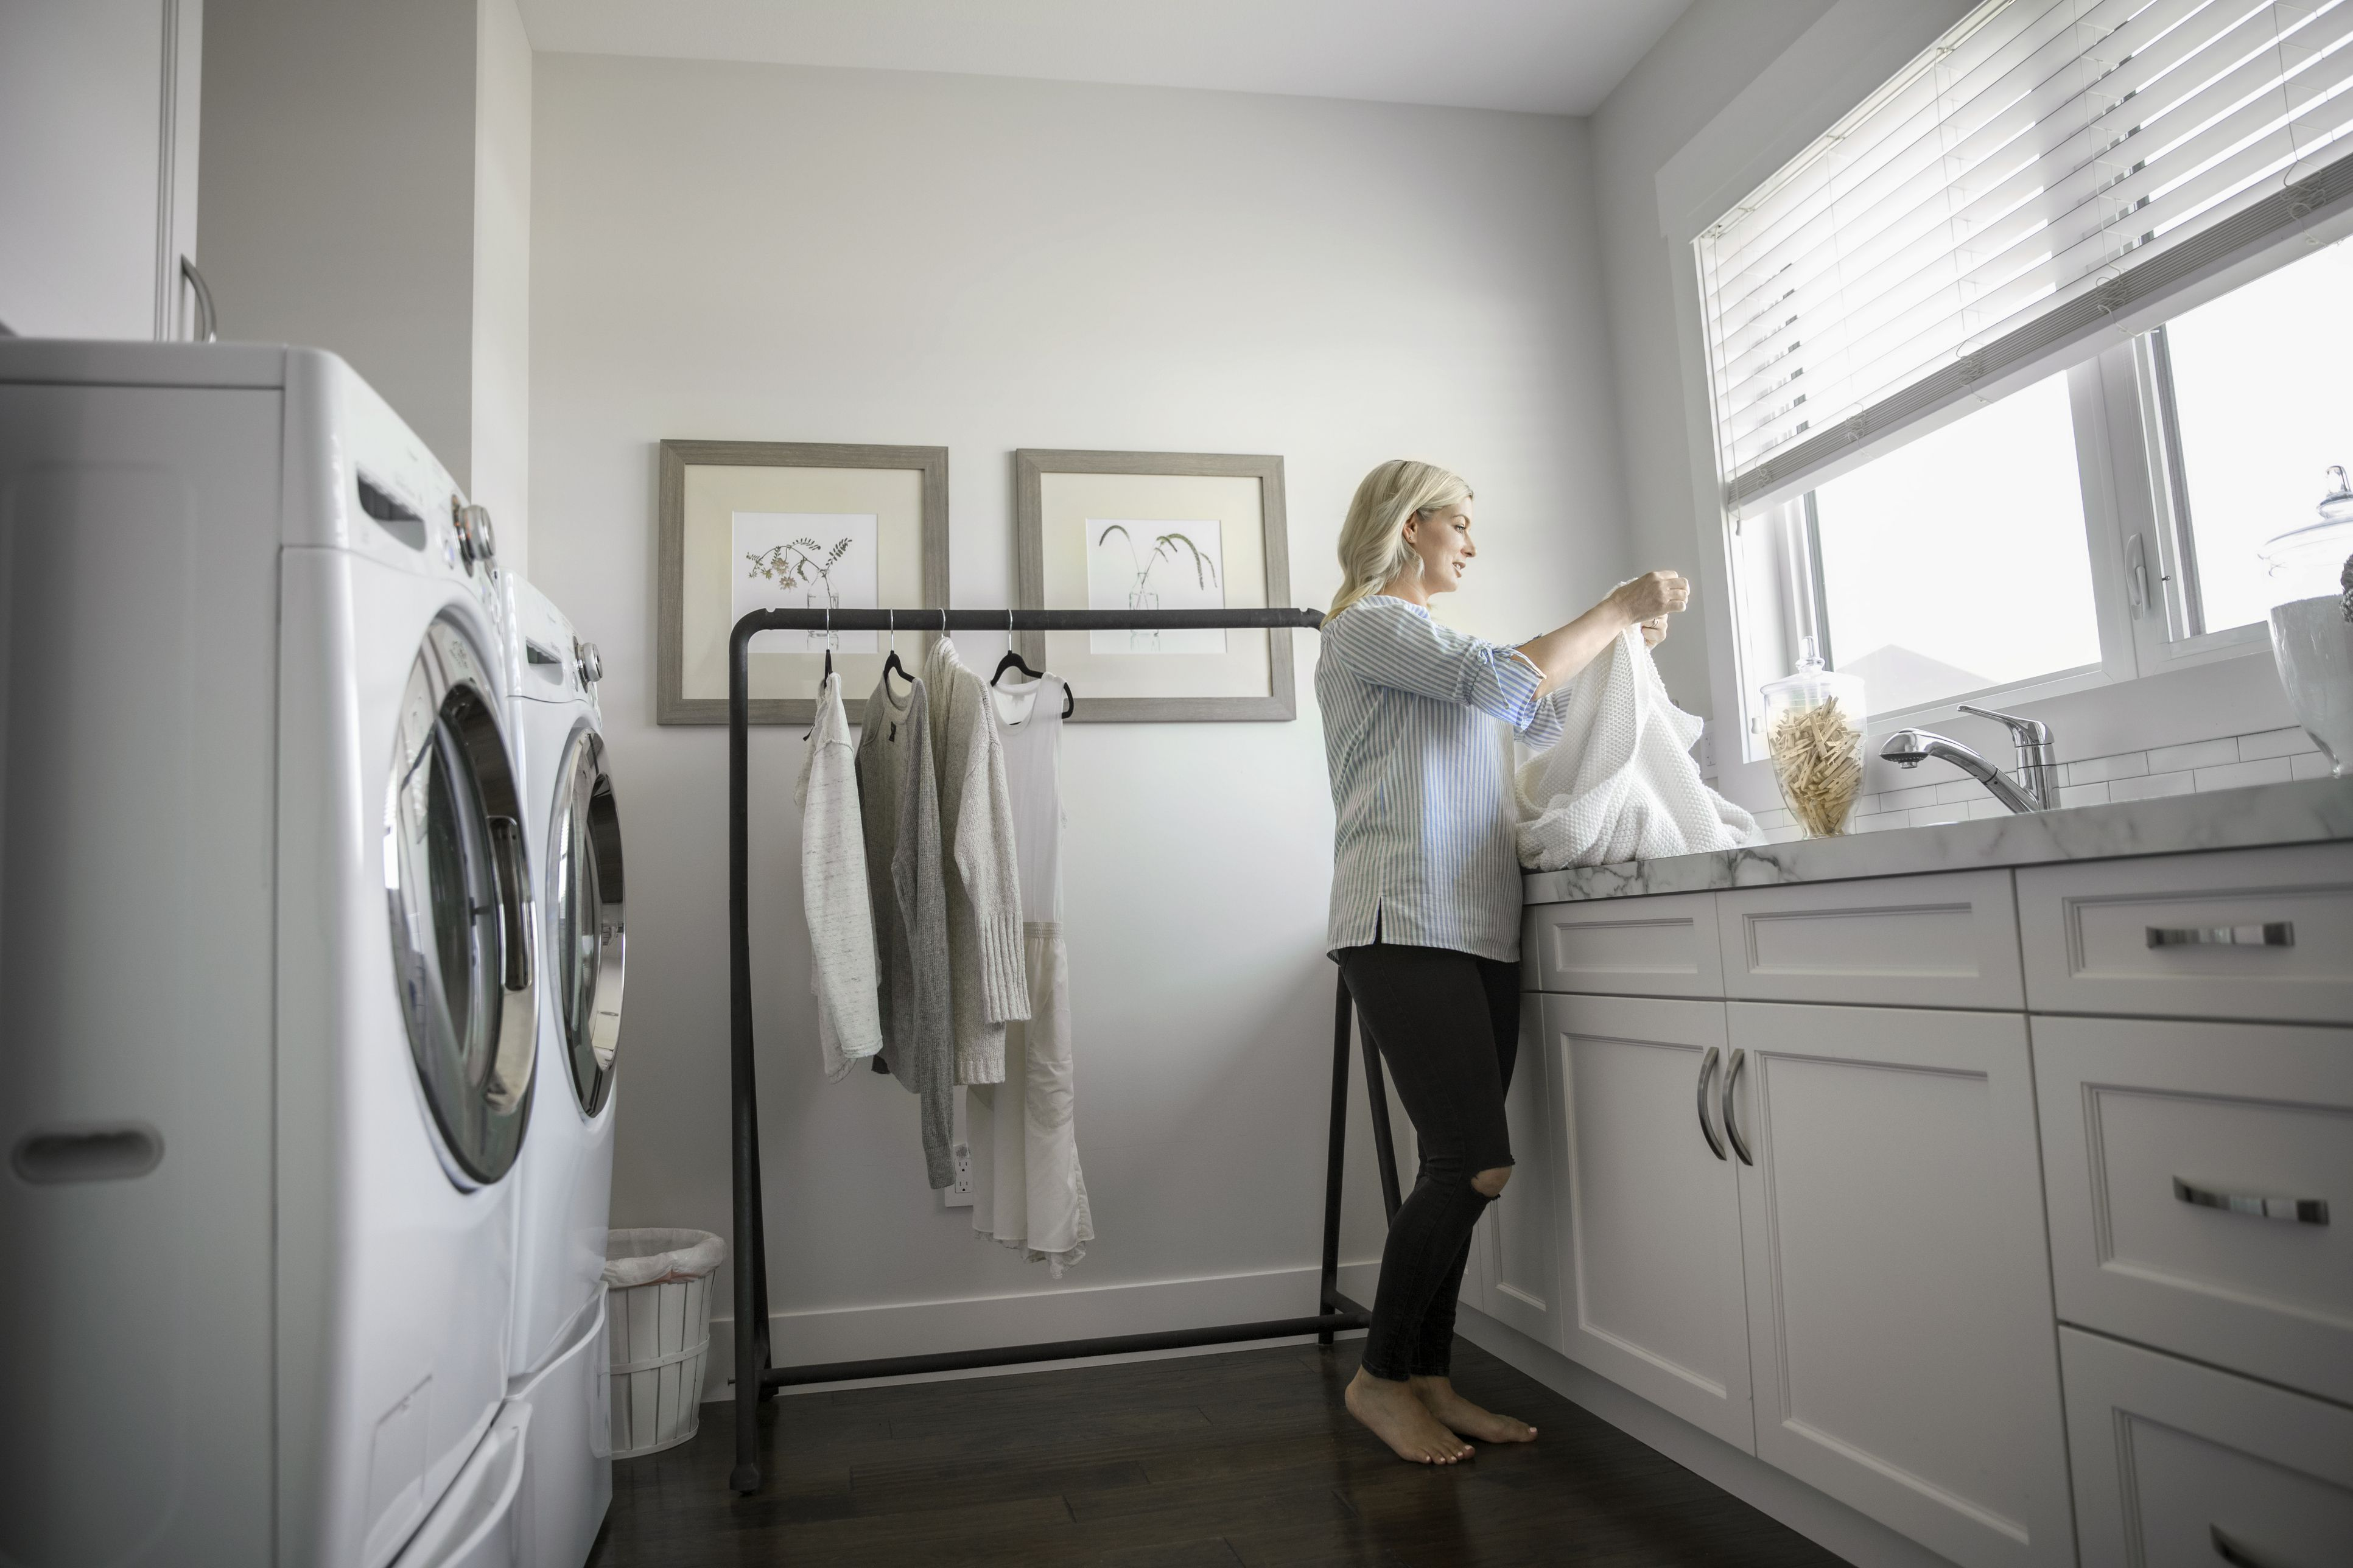 Read Reviews And Buy The Best Smart Washerdryers From Top